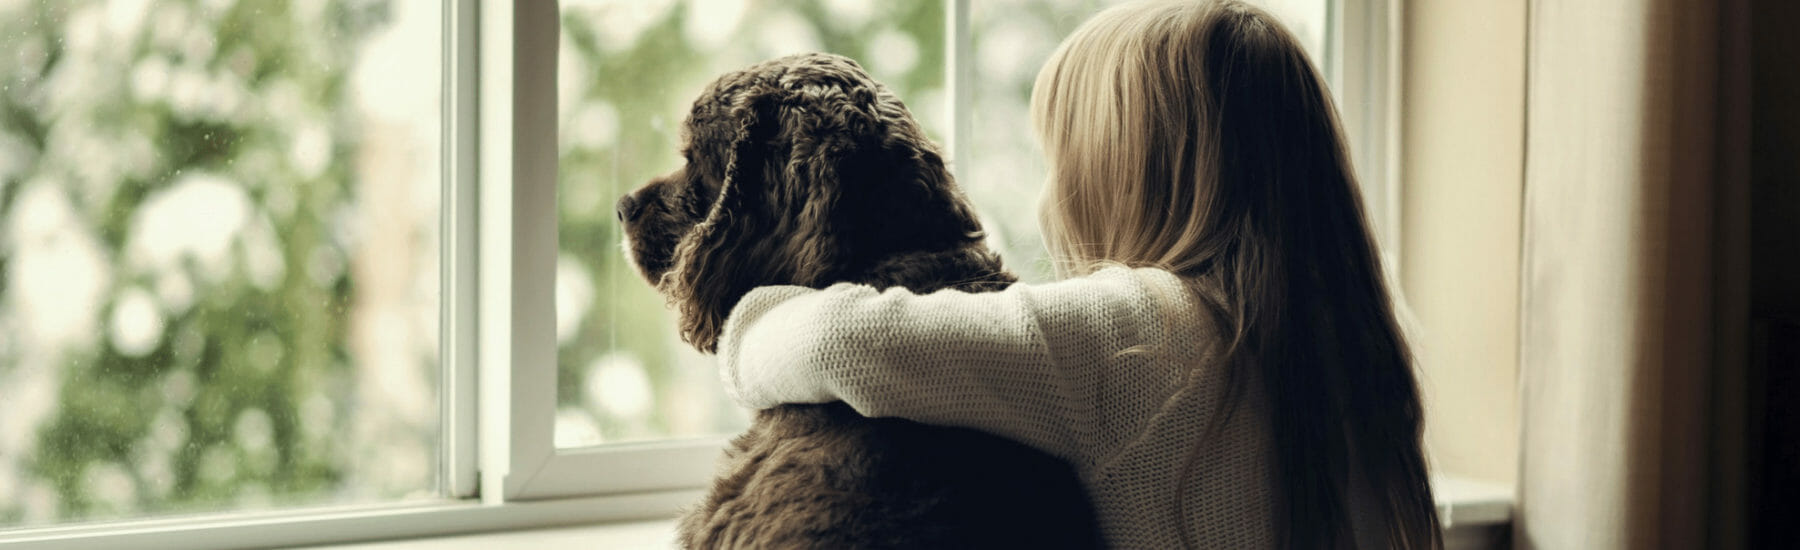 Owner and black dog looking out into window